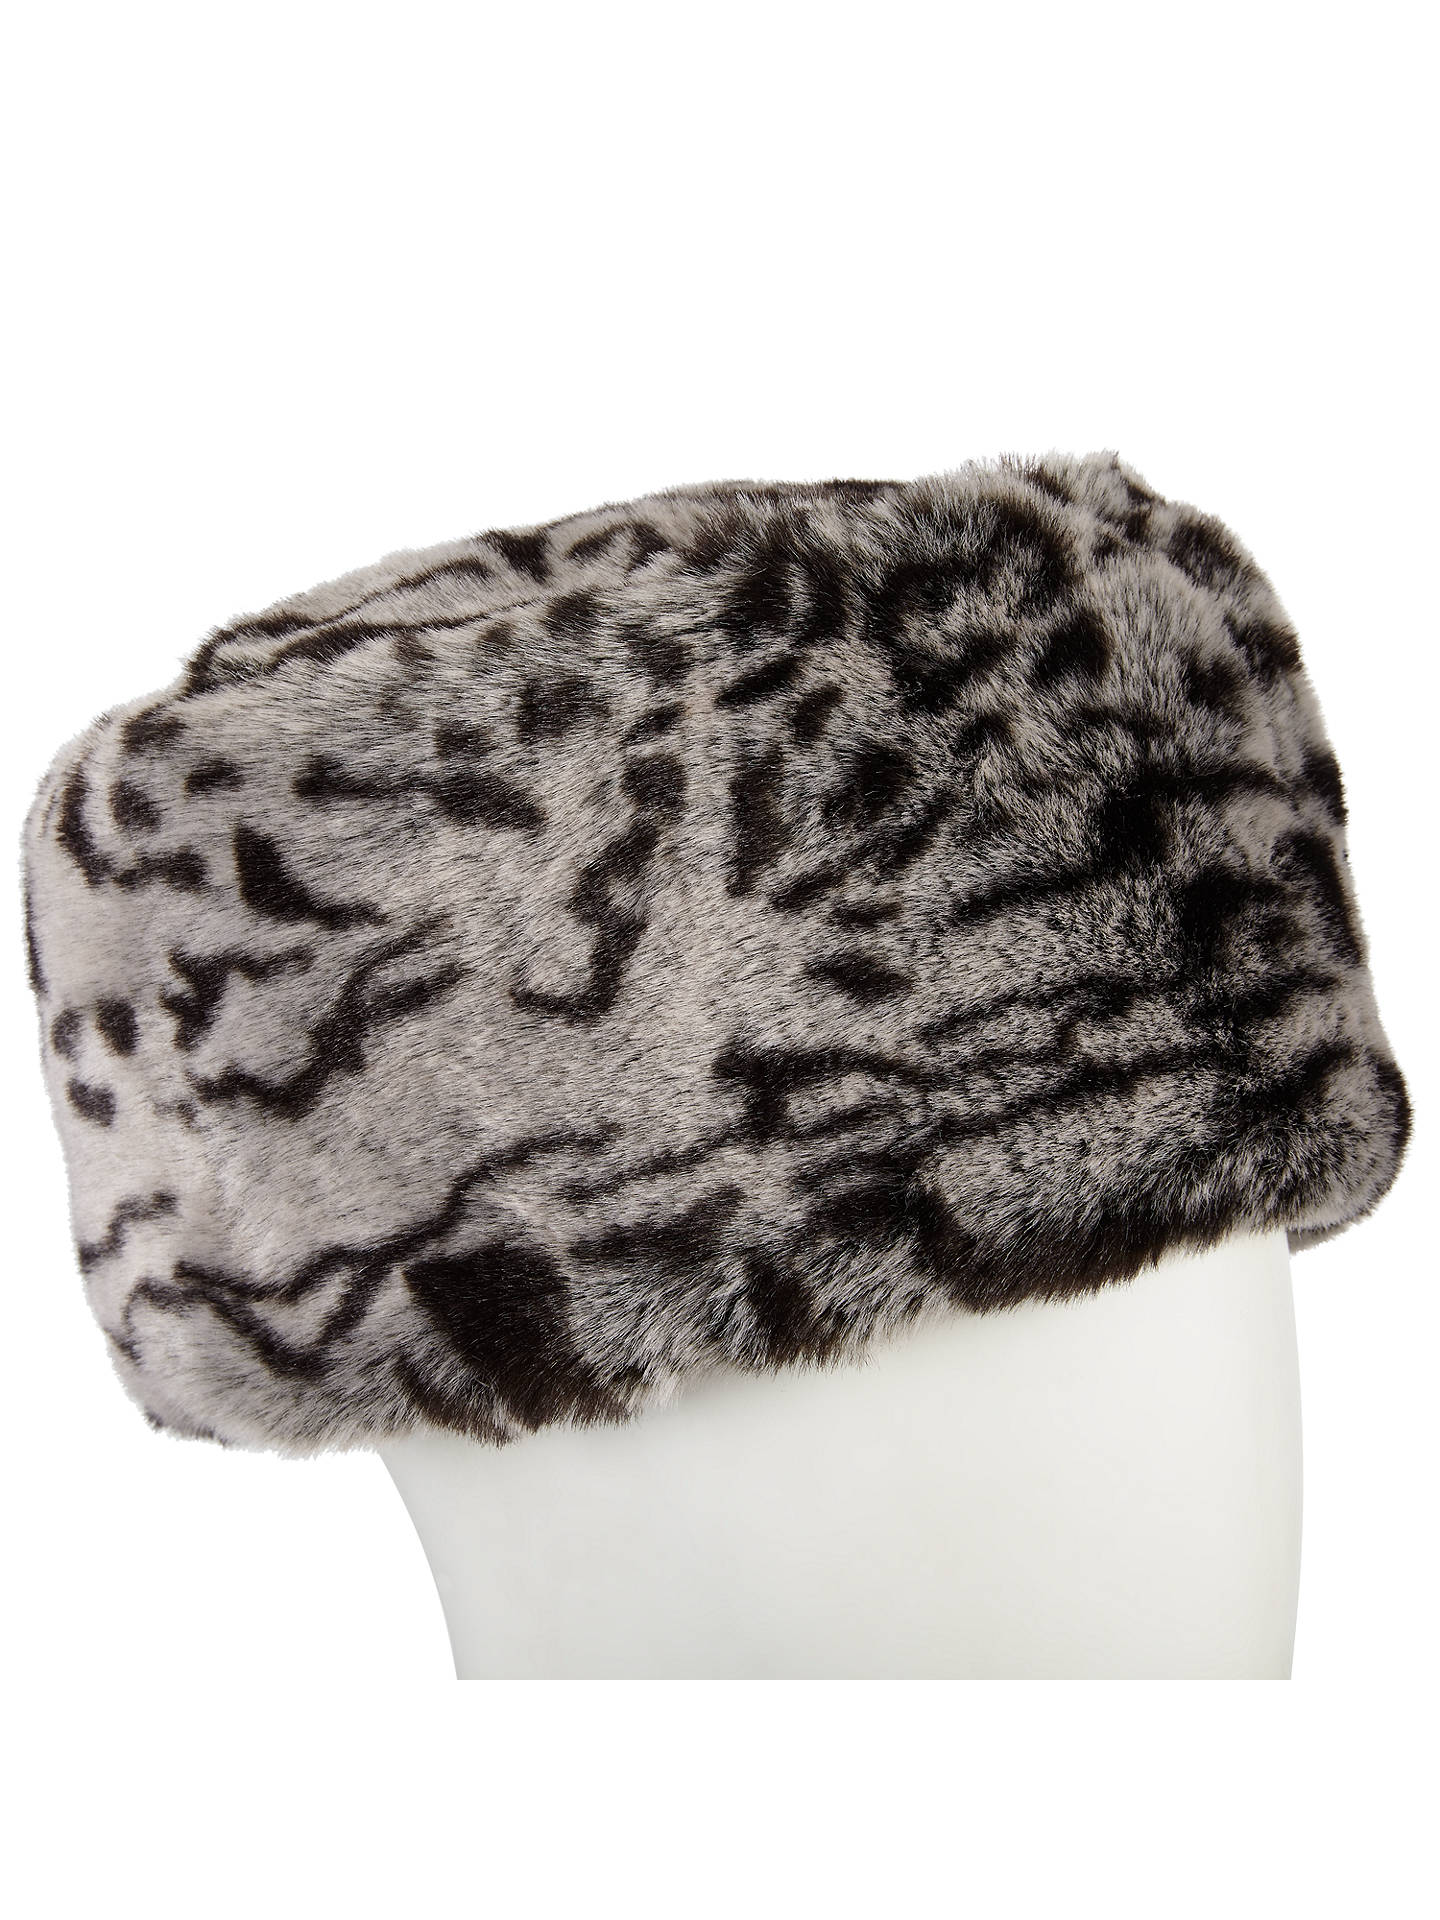 cb6bcc716fed9 Buy John Lewis Animal Print Faux Fur Cossack Hat